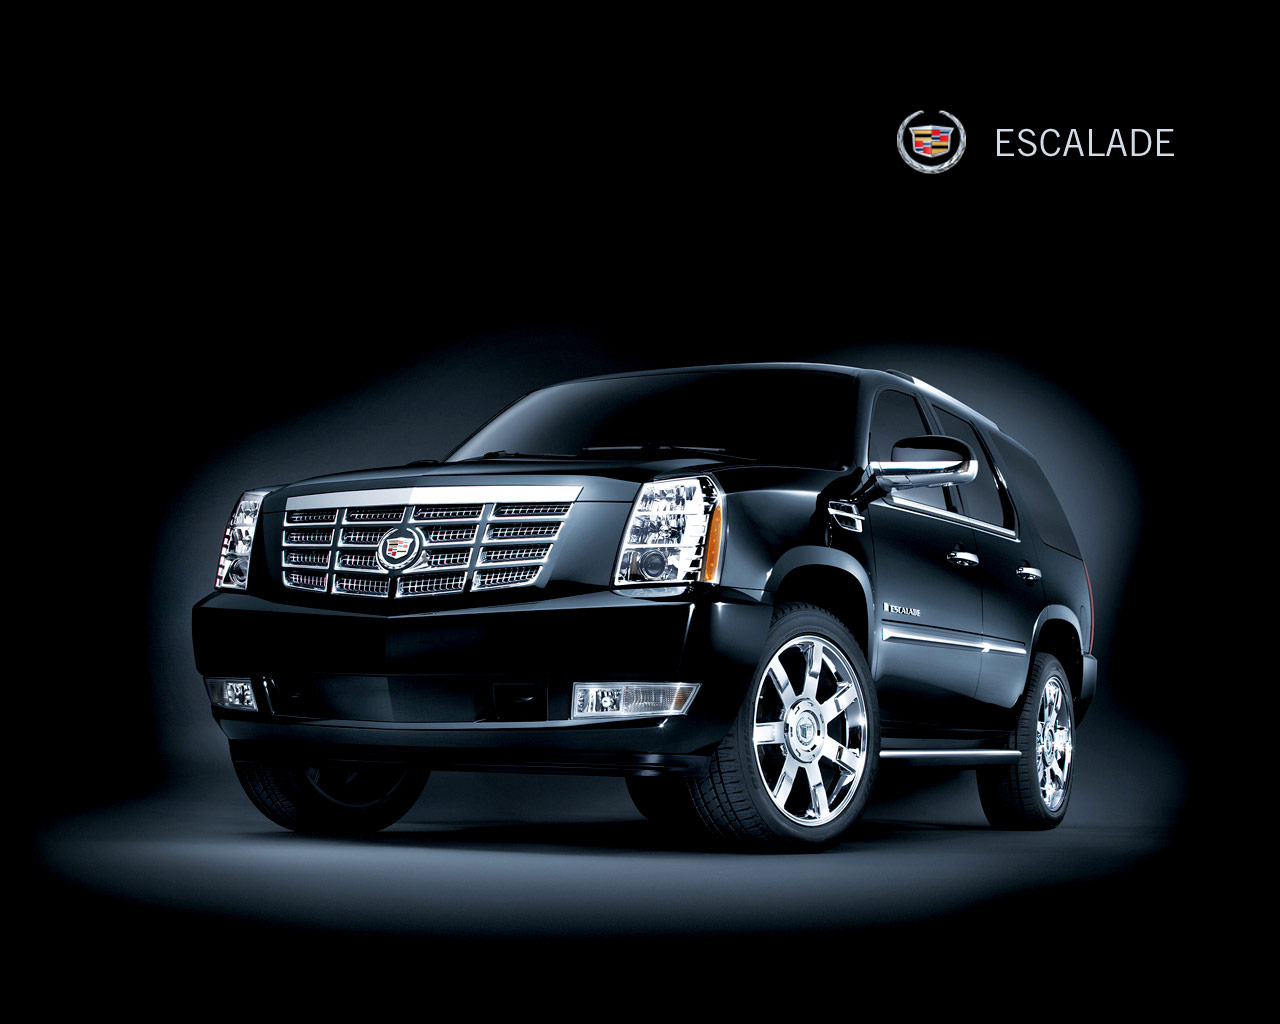 Hd cadillac escalade wallpapers full hd pictures - Cadillac wallpaper ...